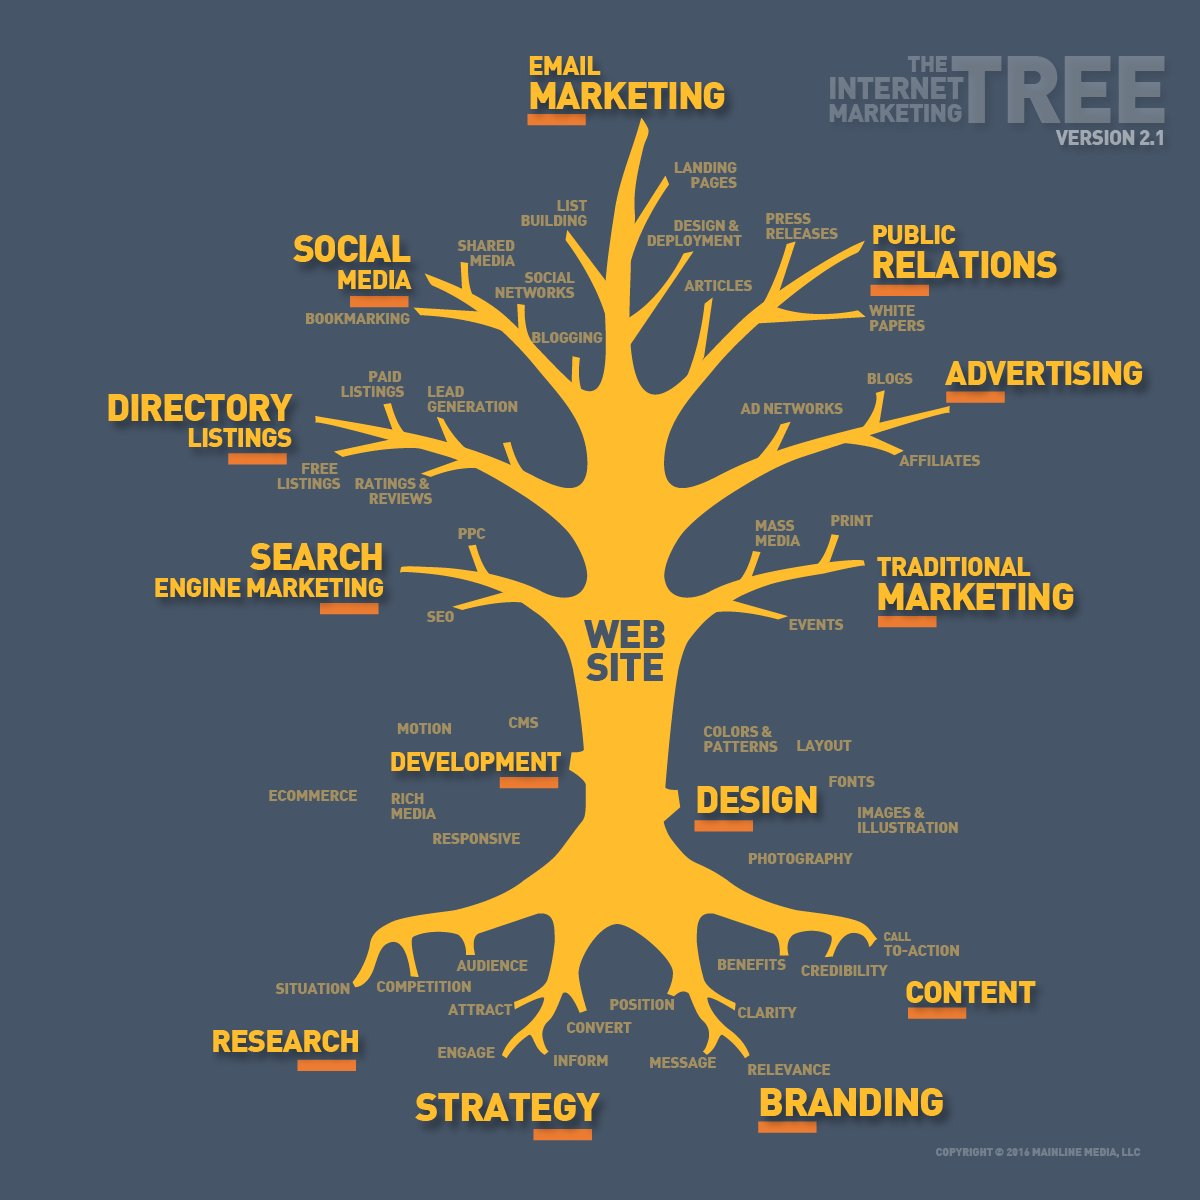 #InternetMarketing Tree #Contentmarketing #Branding #Brand #SEO #Startup #Leadgeneration #Success #SMM #SEOtips #GrowthHacking #Content #Marketing #DigitalMarketing #SocialMedia #Makeyourownlane #Defstar5 #Mpgvip #OnlineMarketing <br>http://pic.twitter.com/oLfDVkWQNT